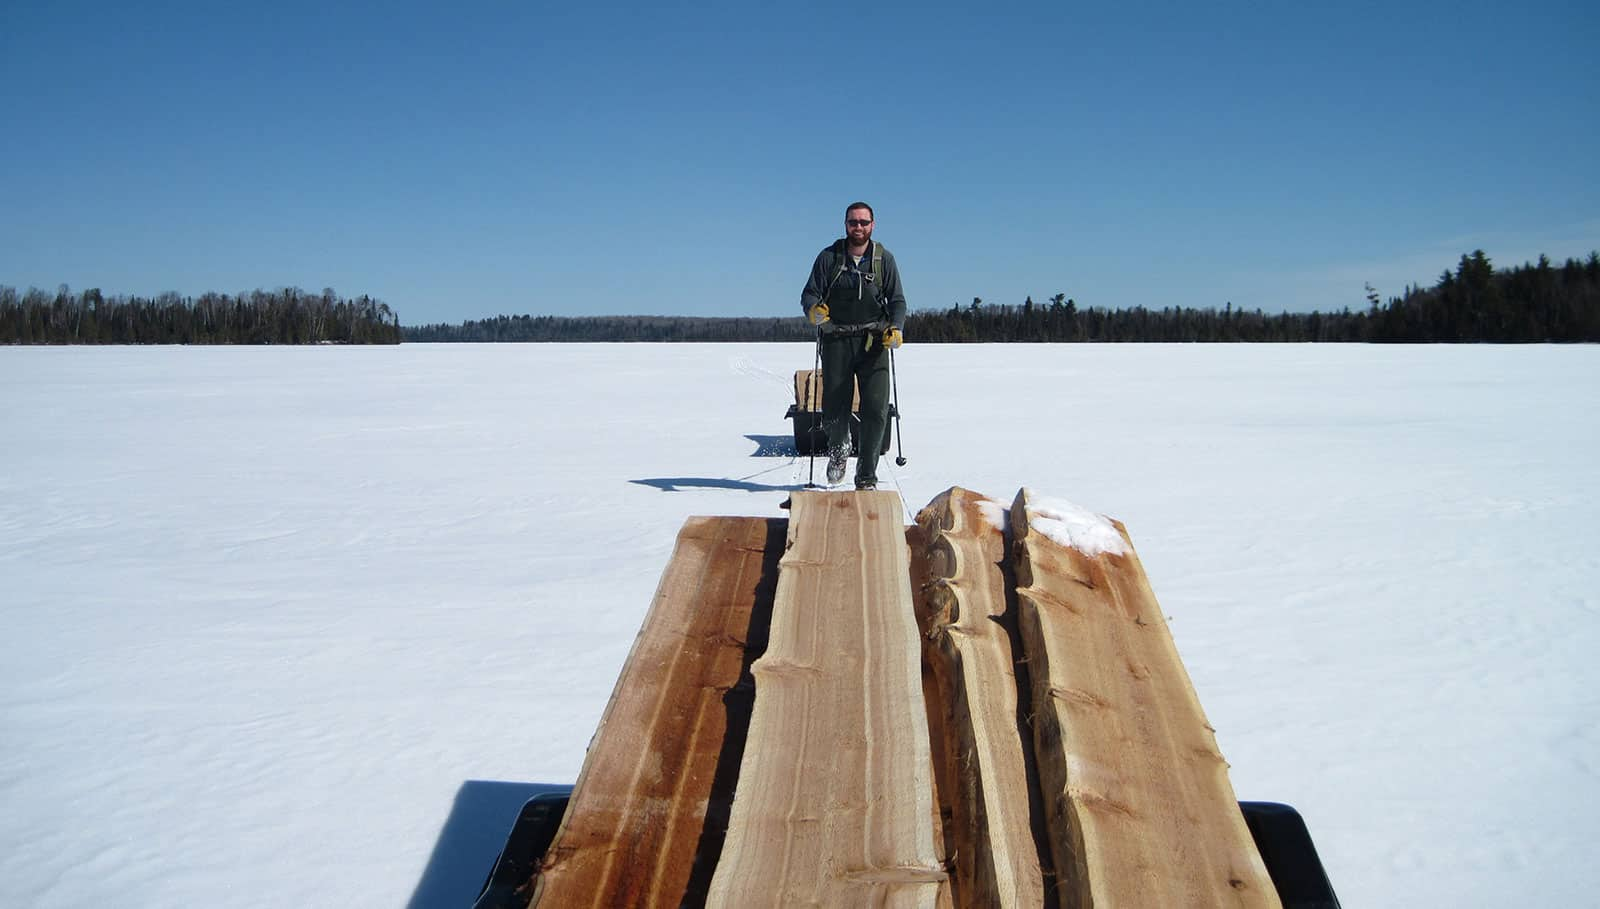 Winter Patrol in the Boundary Waters | Quetico Superior Foundation